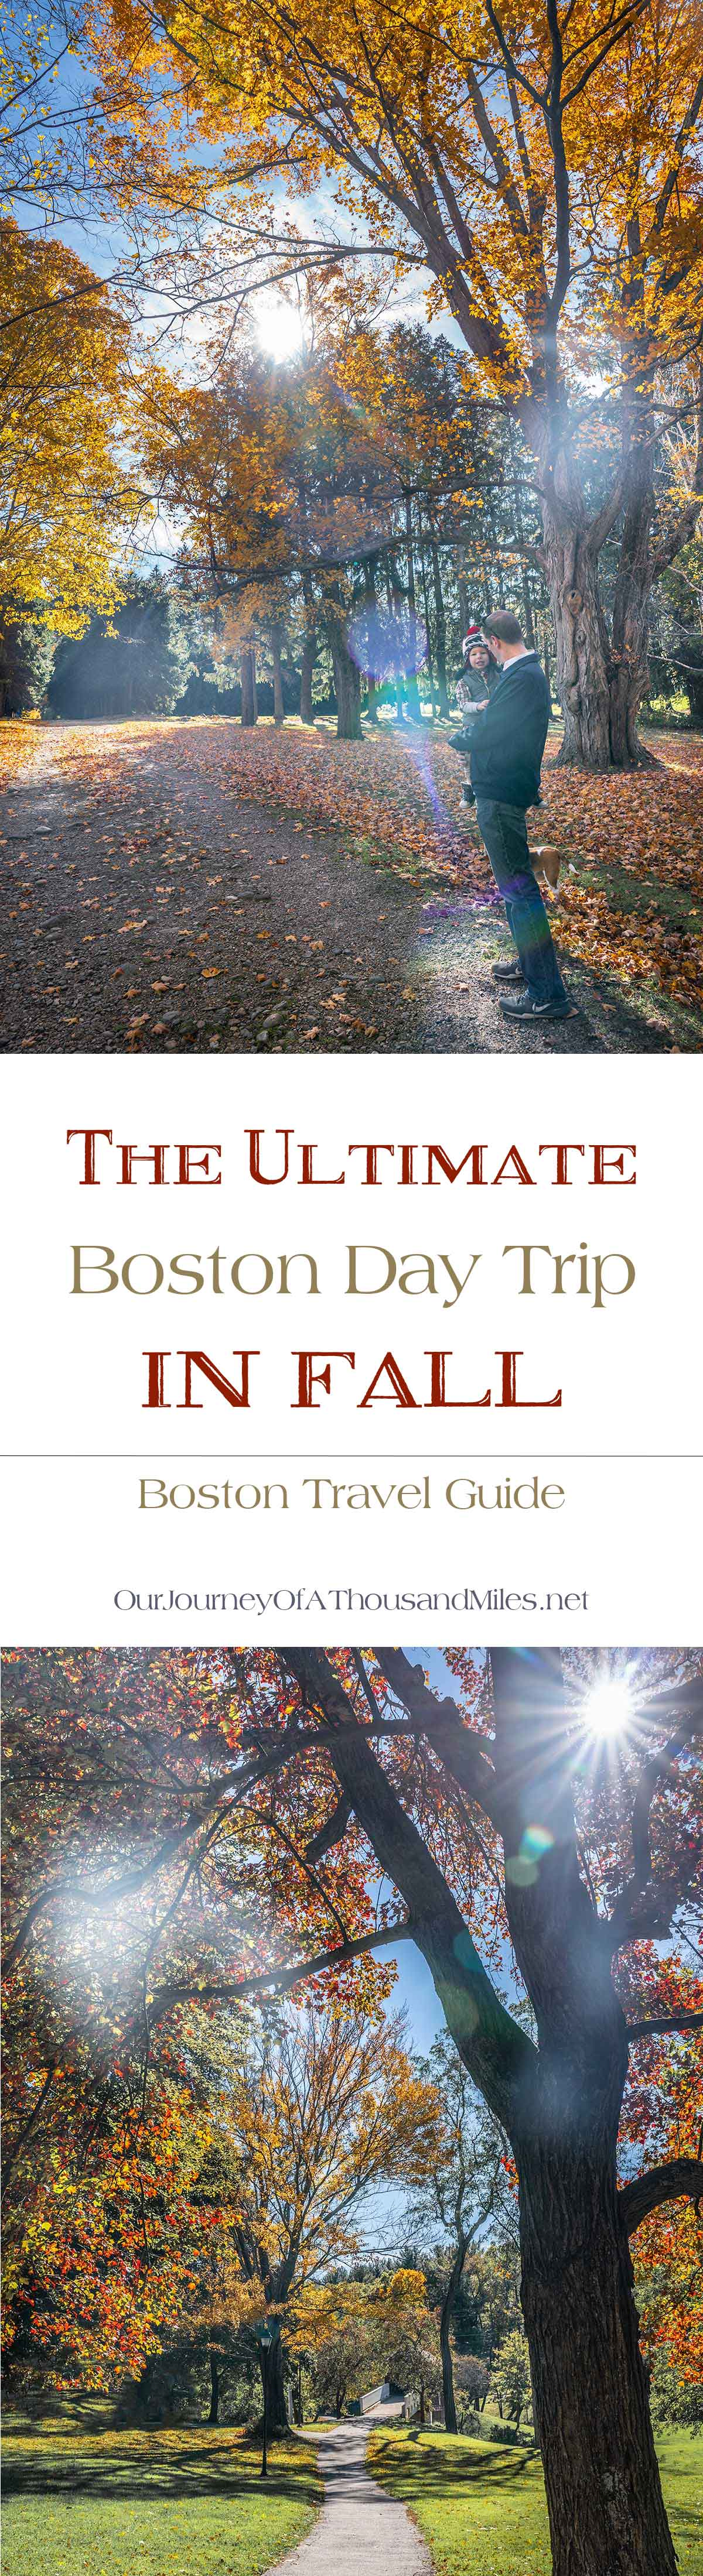 The-Ultimate-Boston-Day-Trip-In-Fall-Travel-Guide